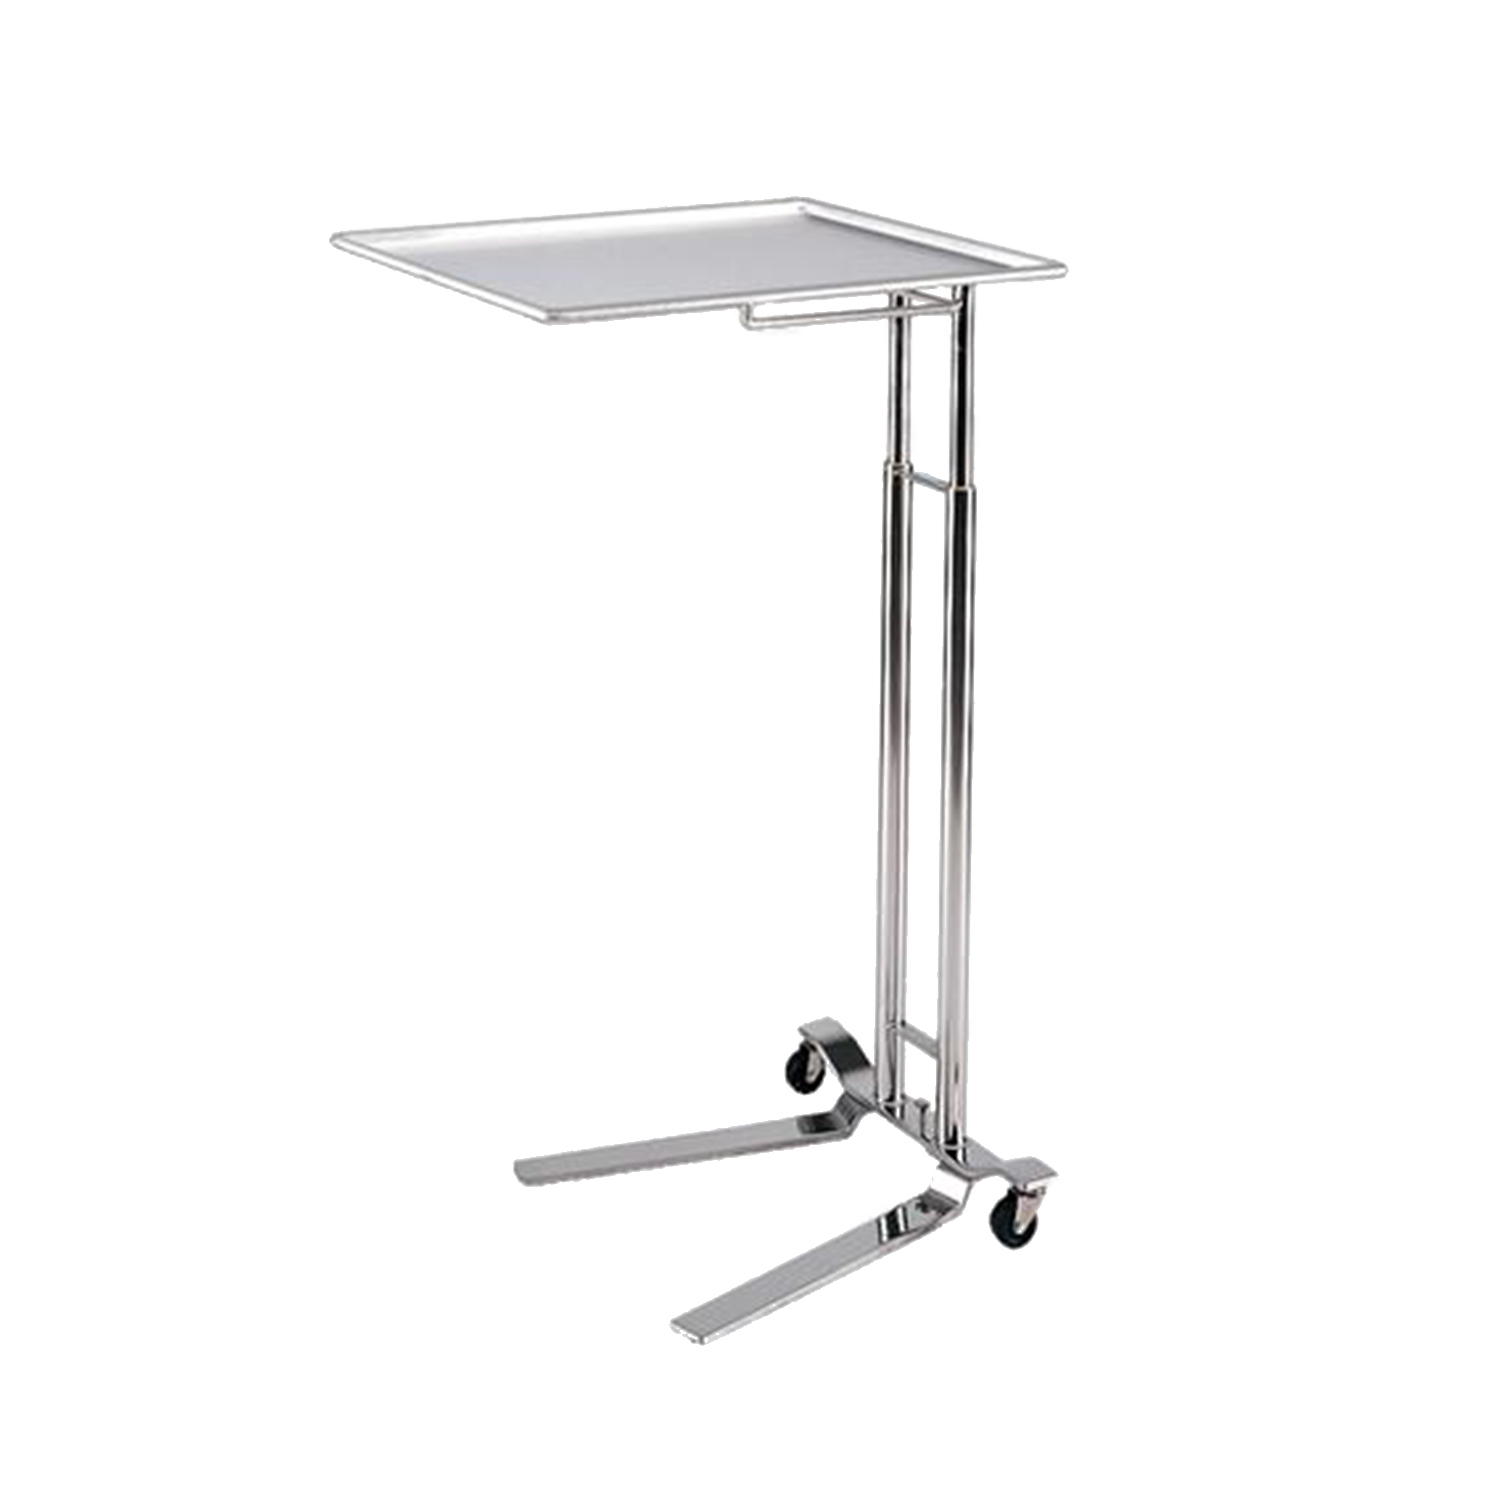 Pedigo 1065 Foot Operated Stainless Steel Mayo Stand